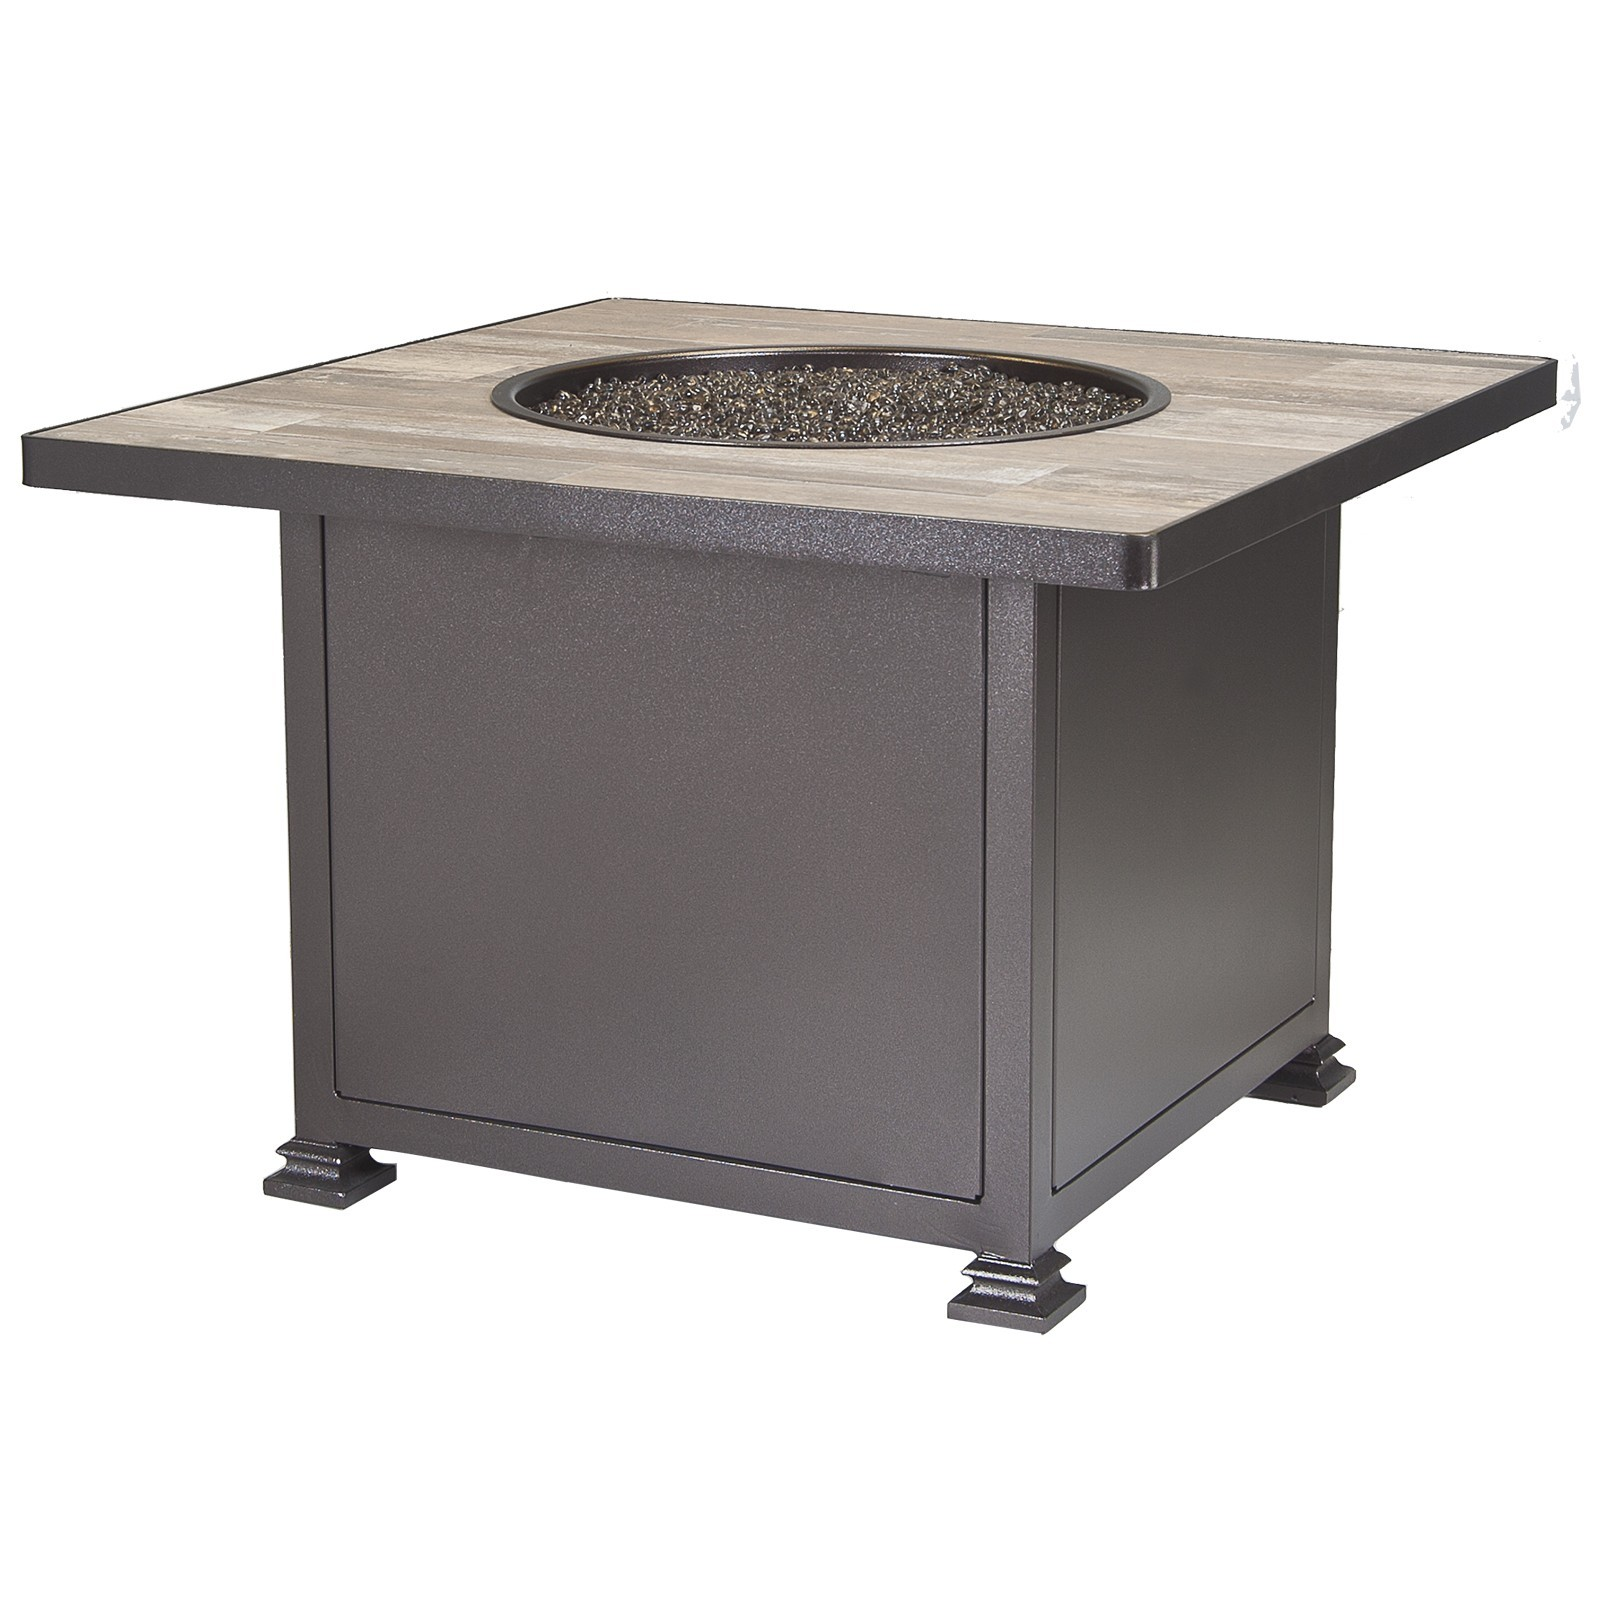 "Fire Pits 36"" Square Chat Height Fire Pit"